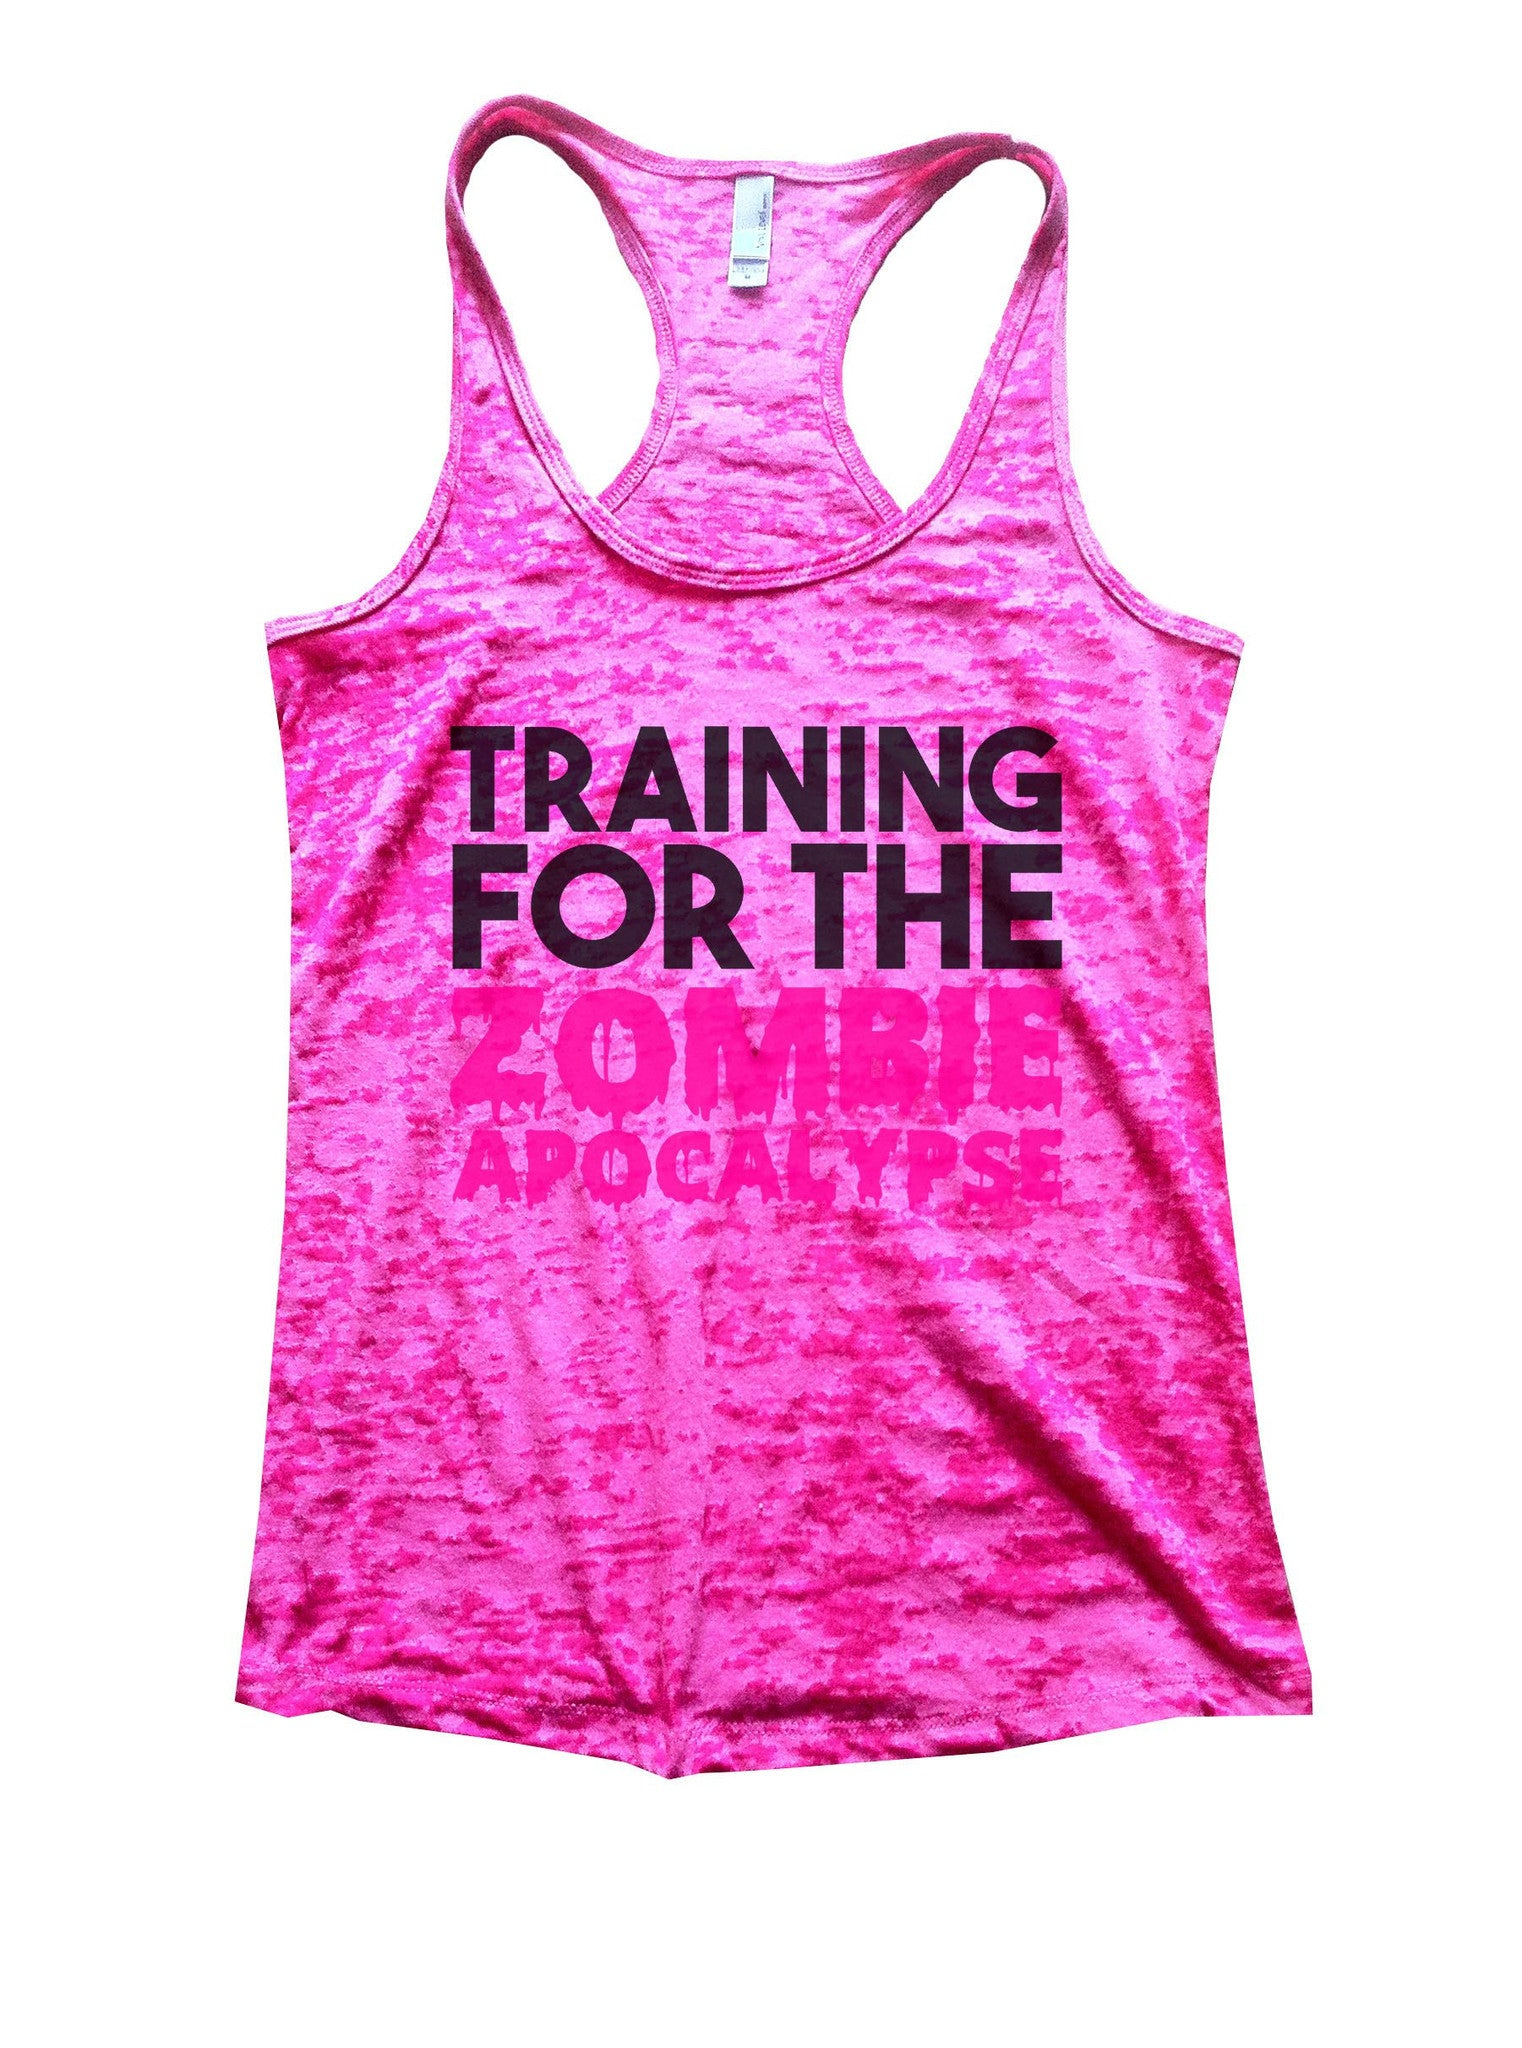 Training For The Zombie Apocalypse Burnout Tank Top By BurnoutTankTops.com - 873 - Funny Shirts Tank Tops Burnouts and Triblends  - 3